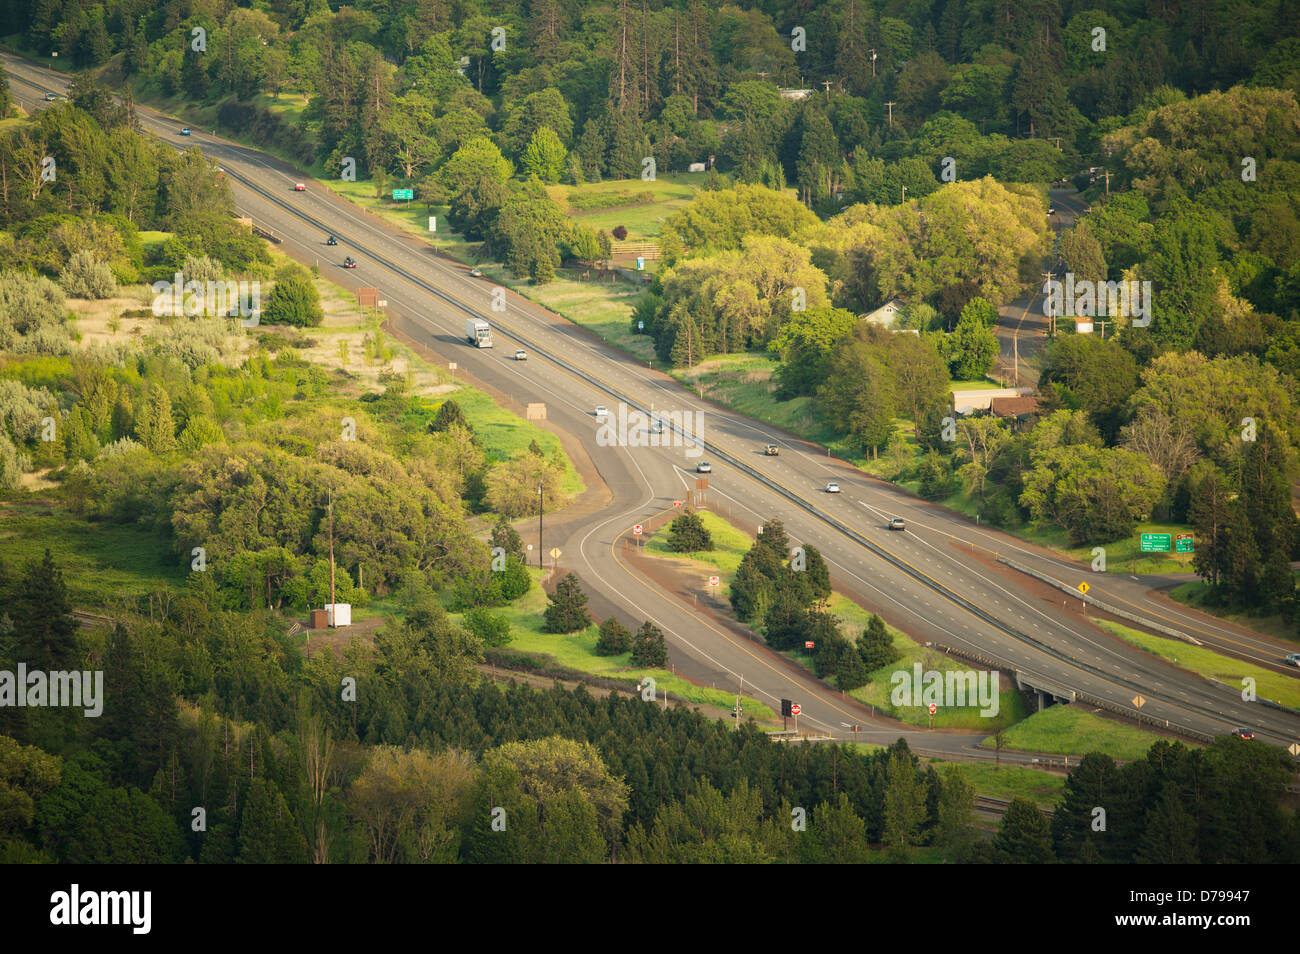 Interstate 84, Rowena, Columbia River Gorge, Oregon - Stock Image